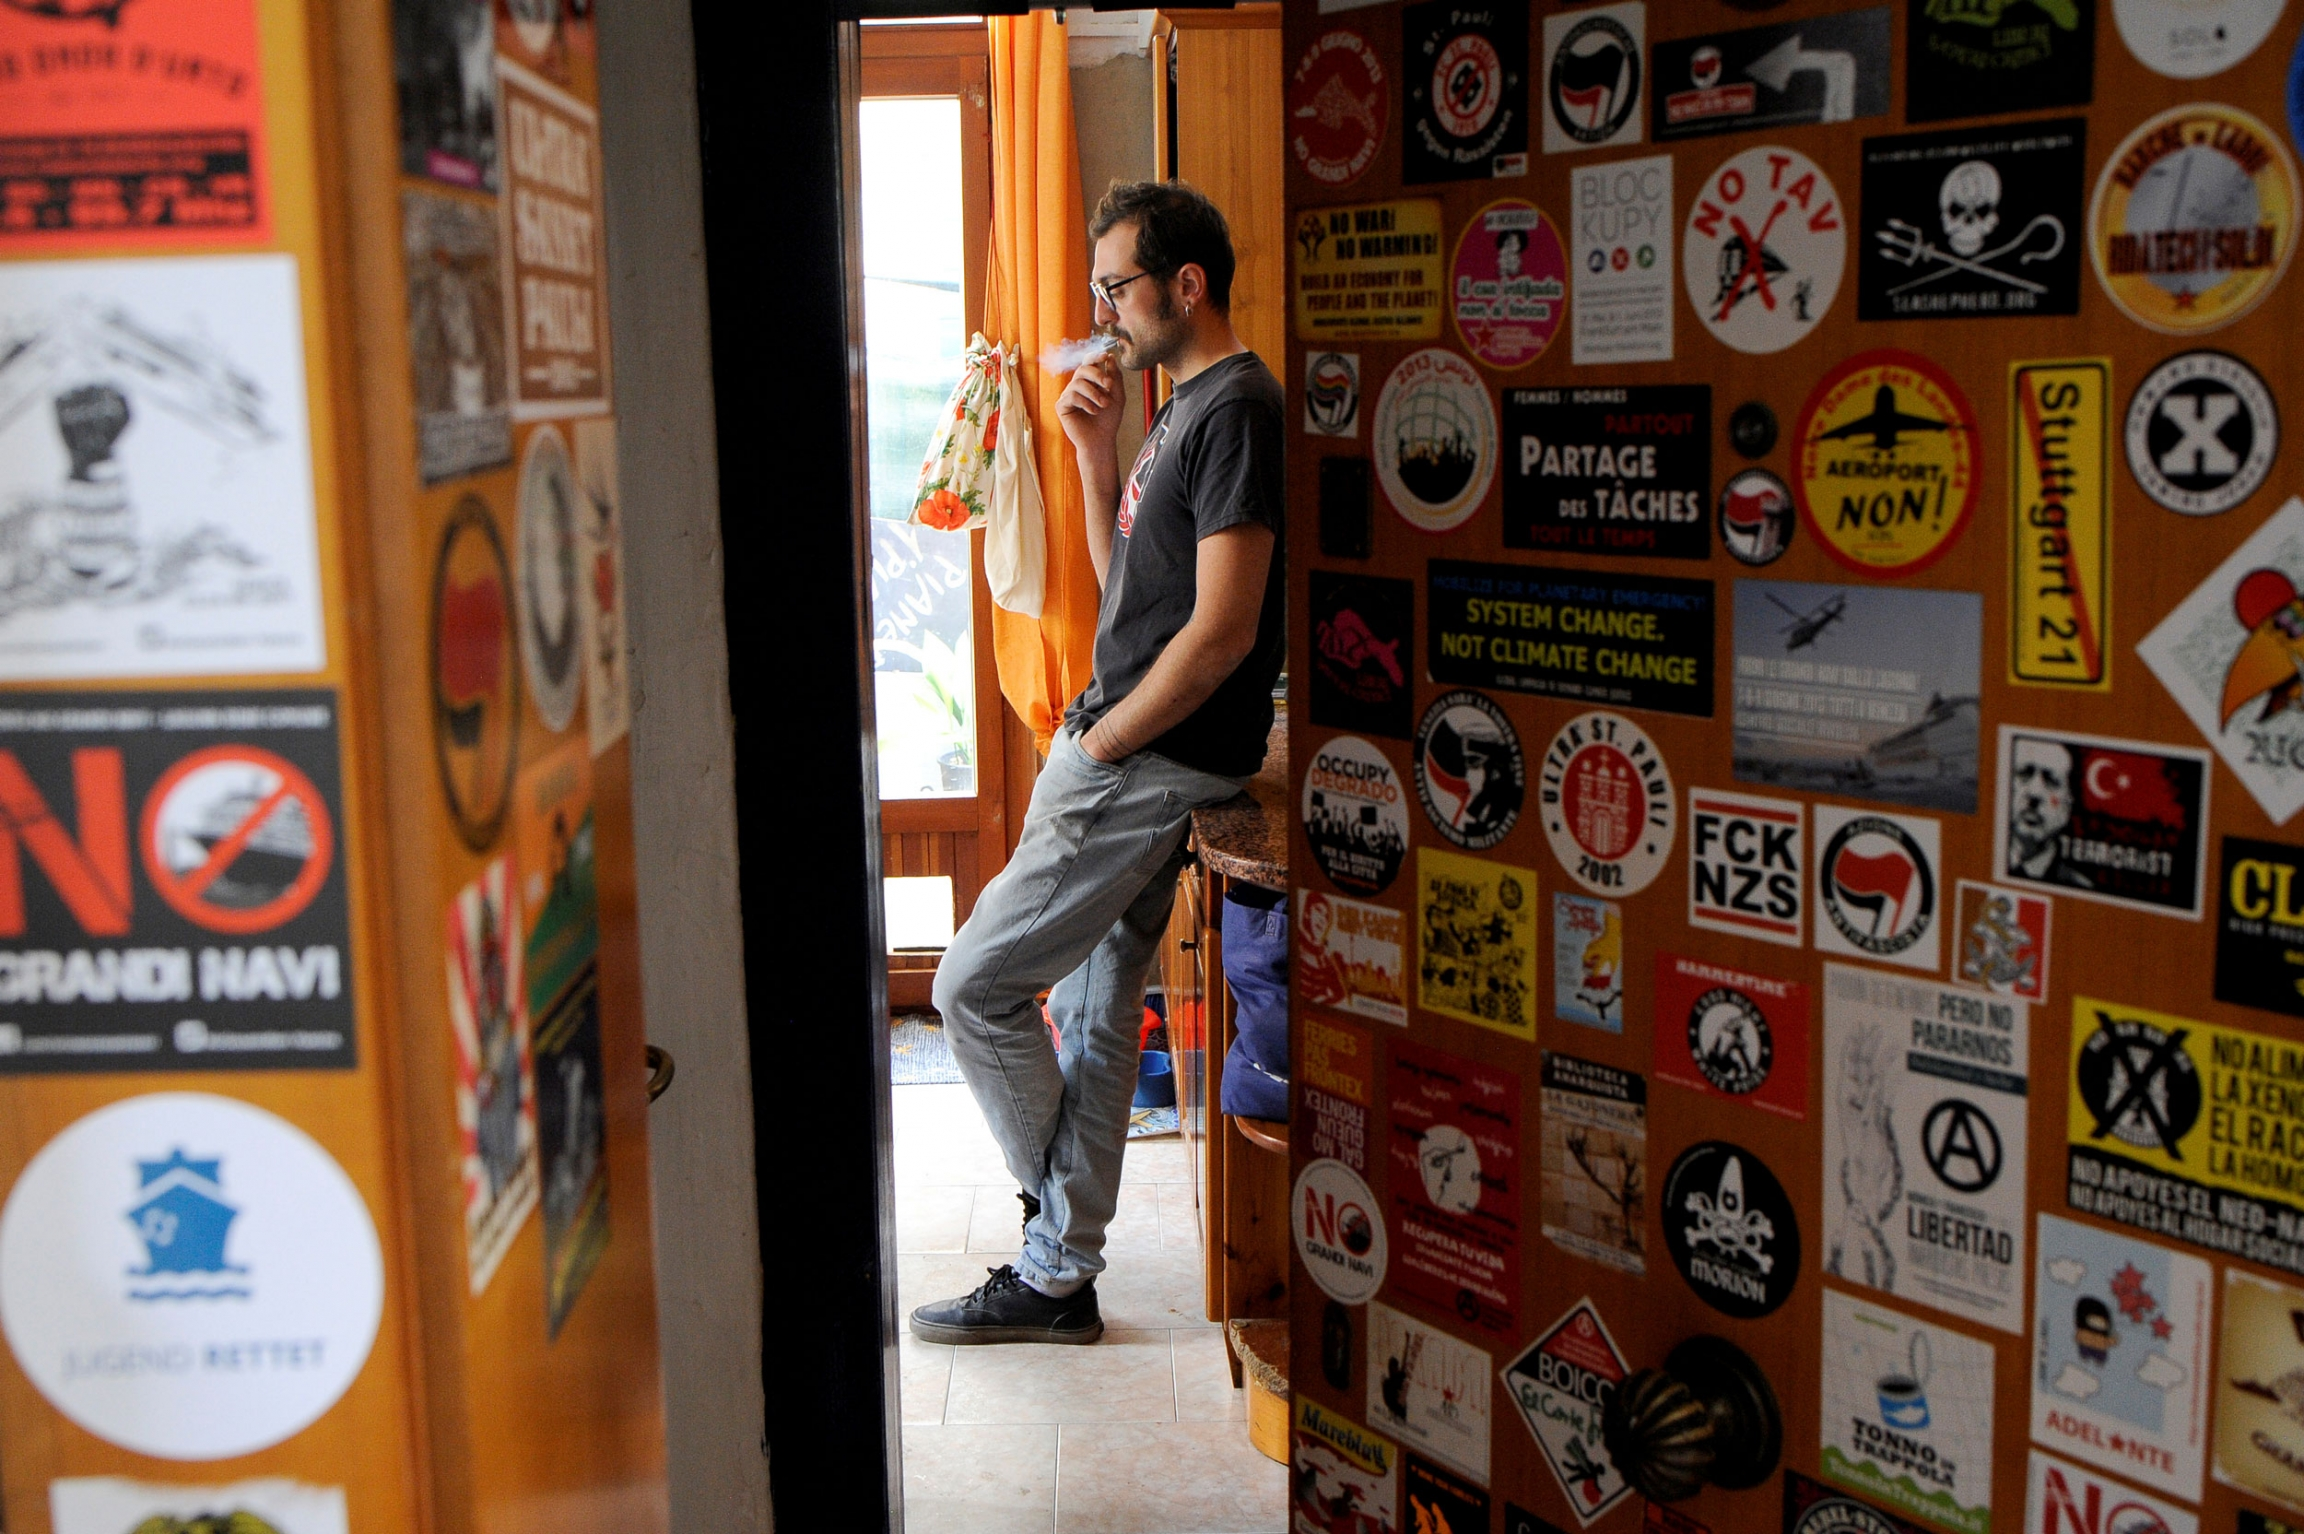 A man is seen through a sticker-covered doorway, leaning up against a dresser and smoking a cigarette.